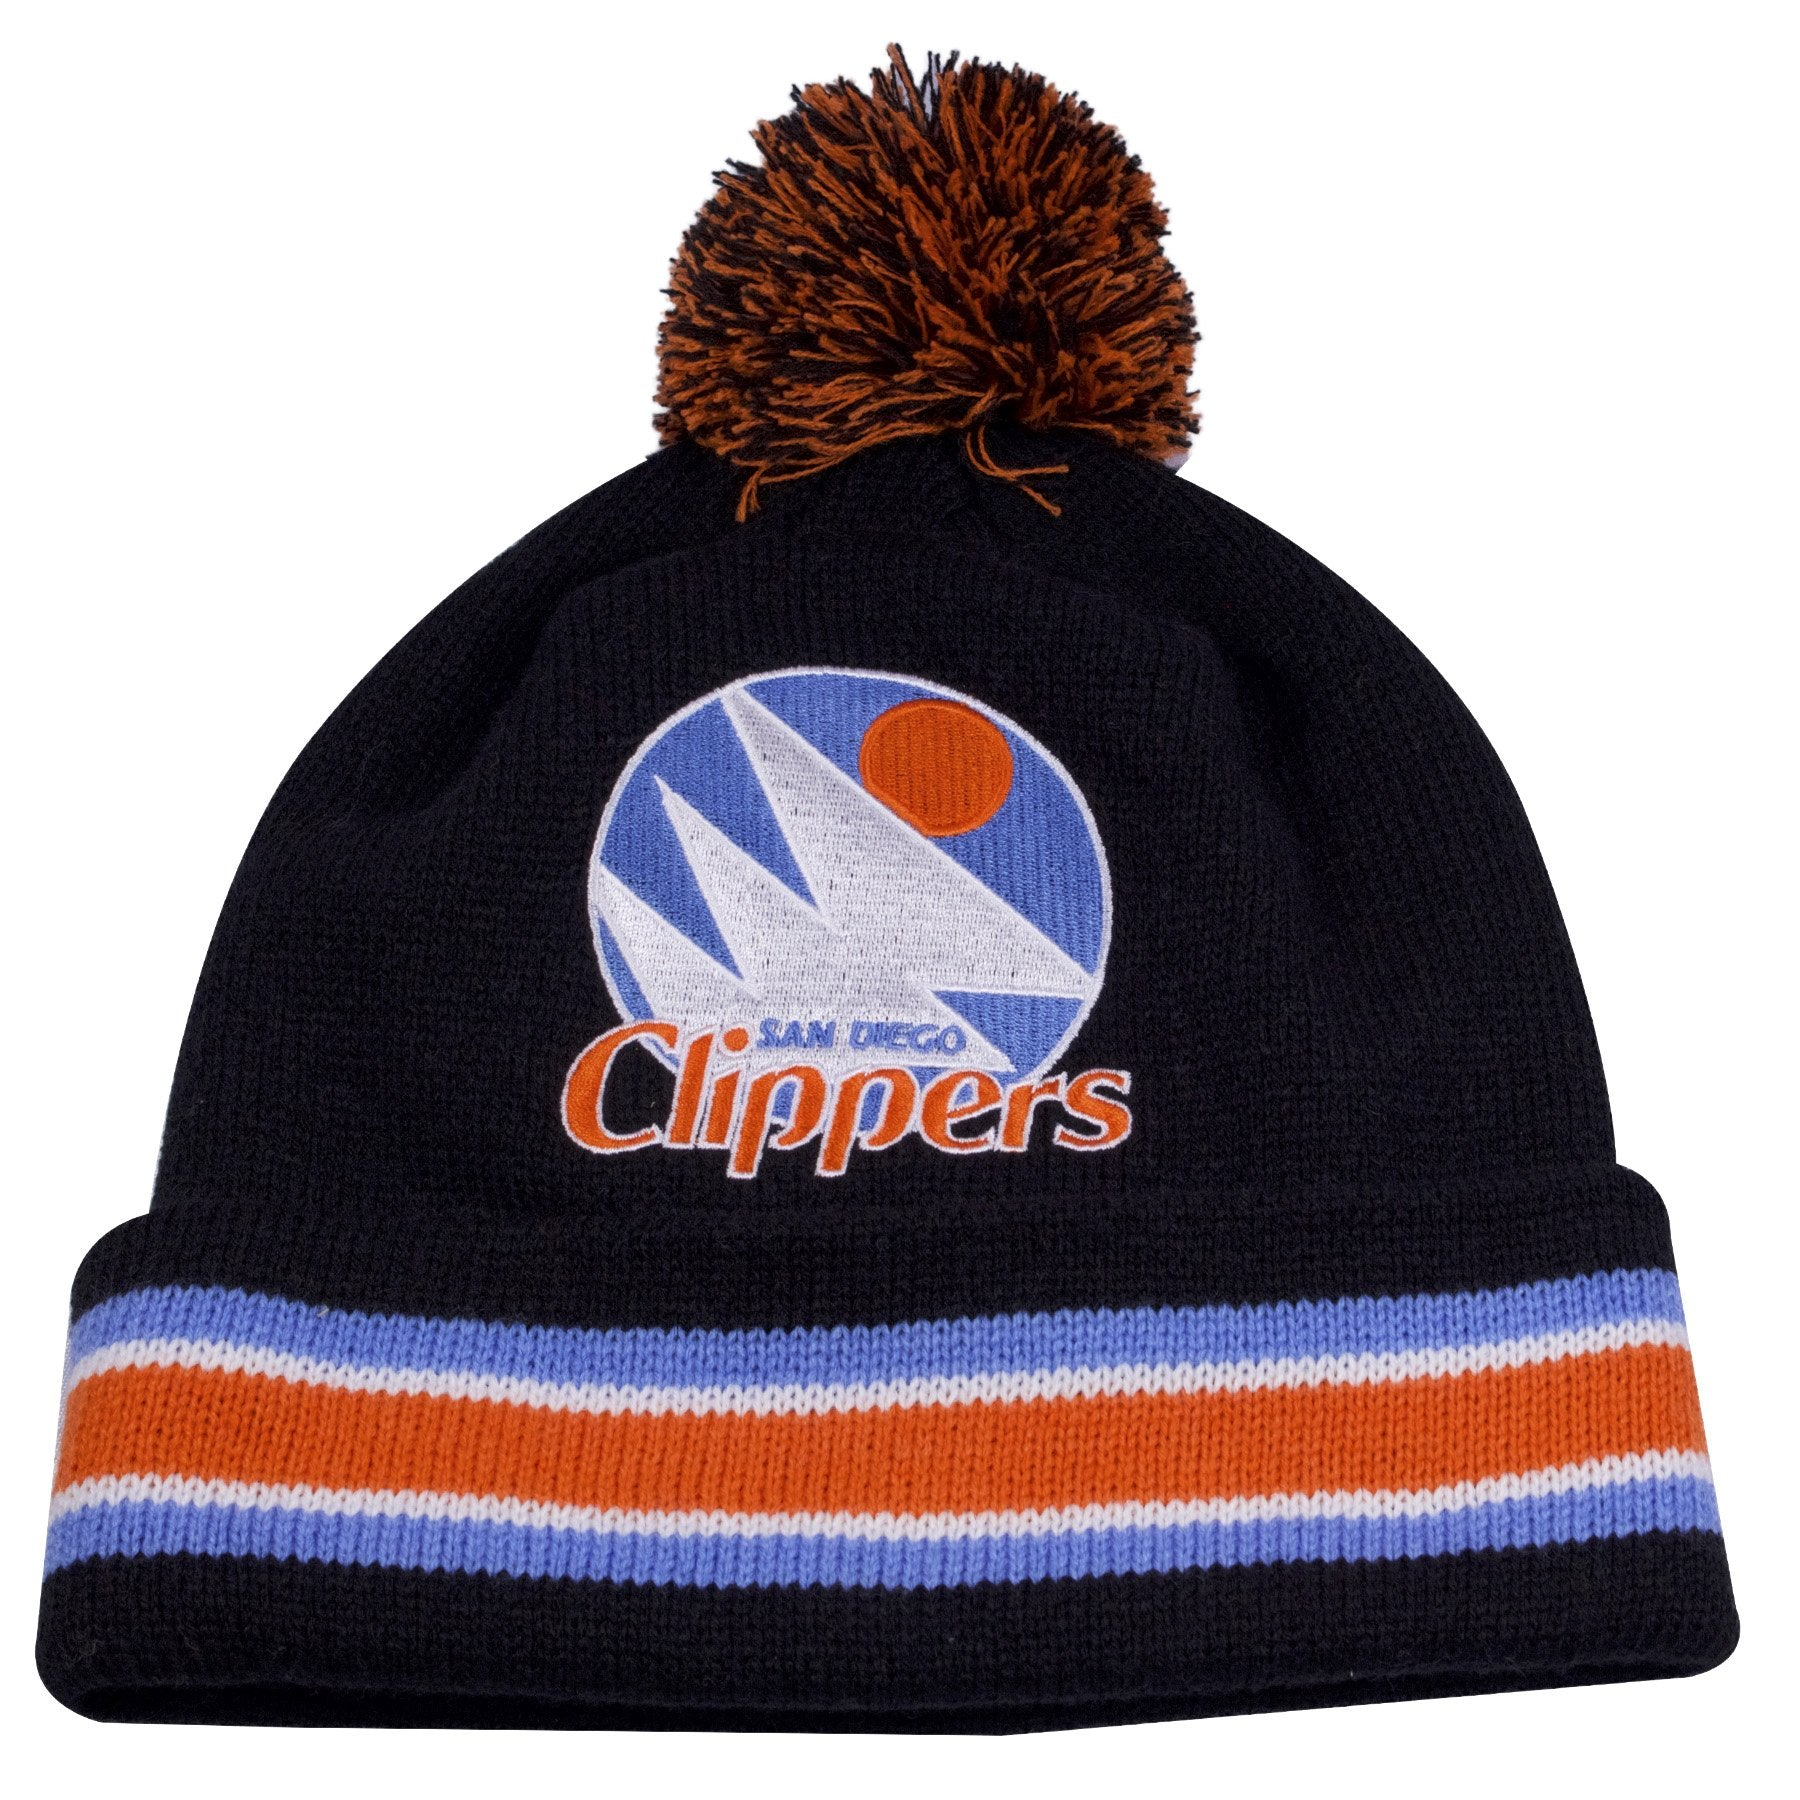 designer fashion 79111 99440 the vintage san diego clippers winter beanie has a black crown, black  raised cuff with